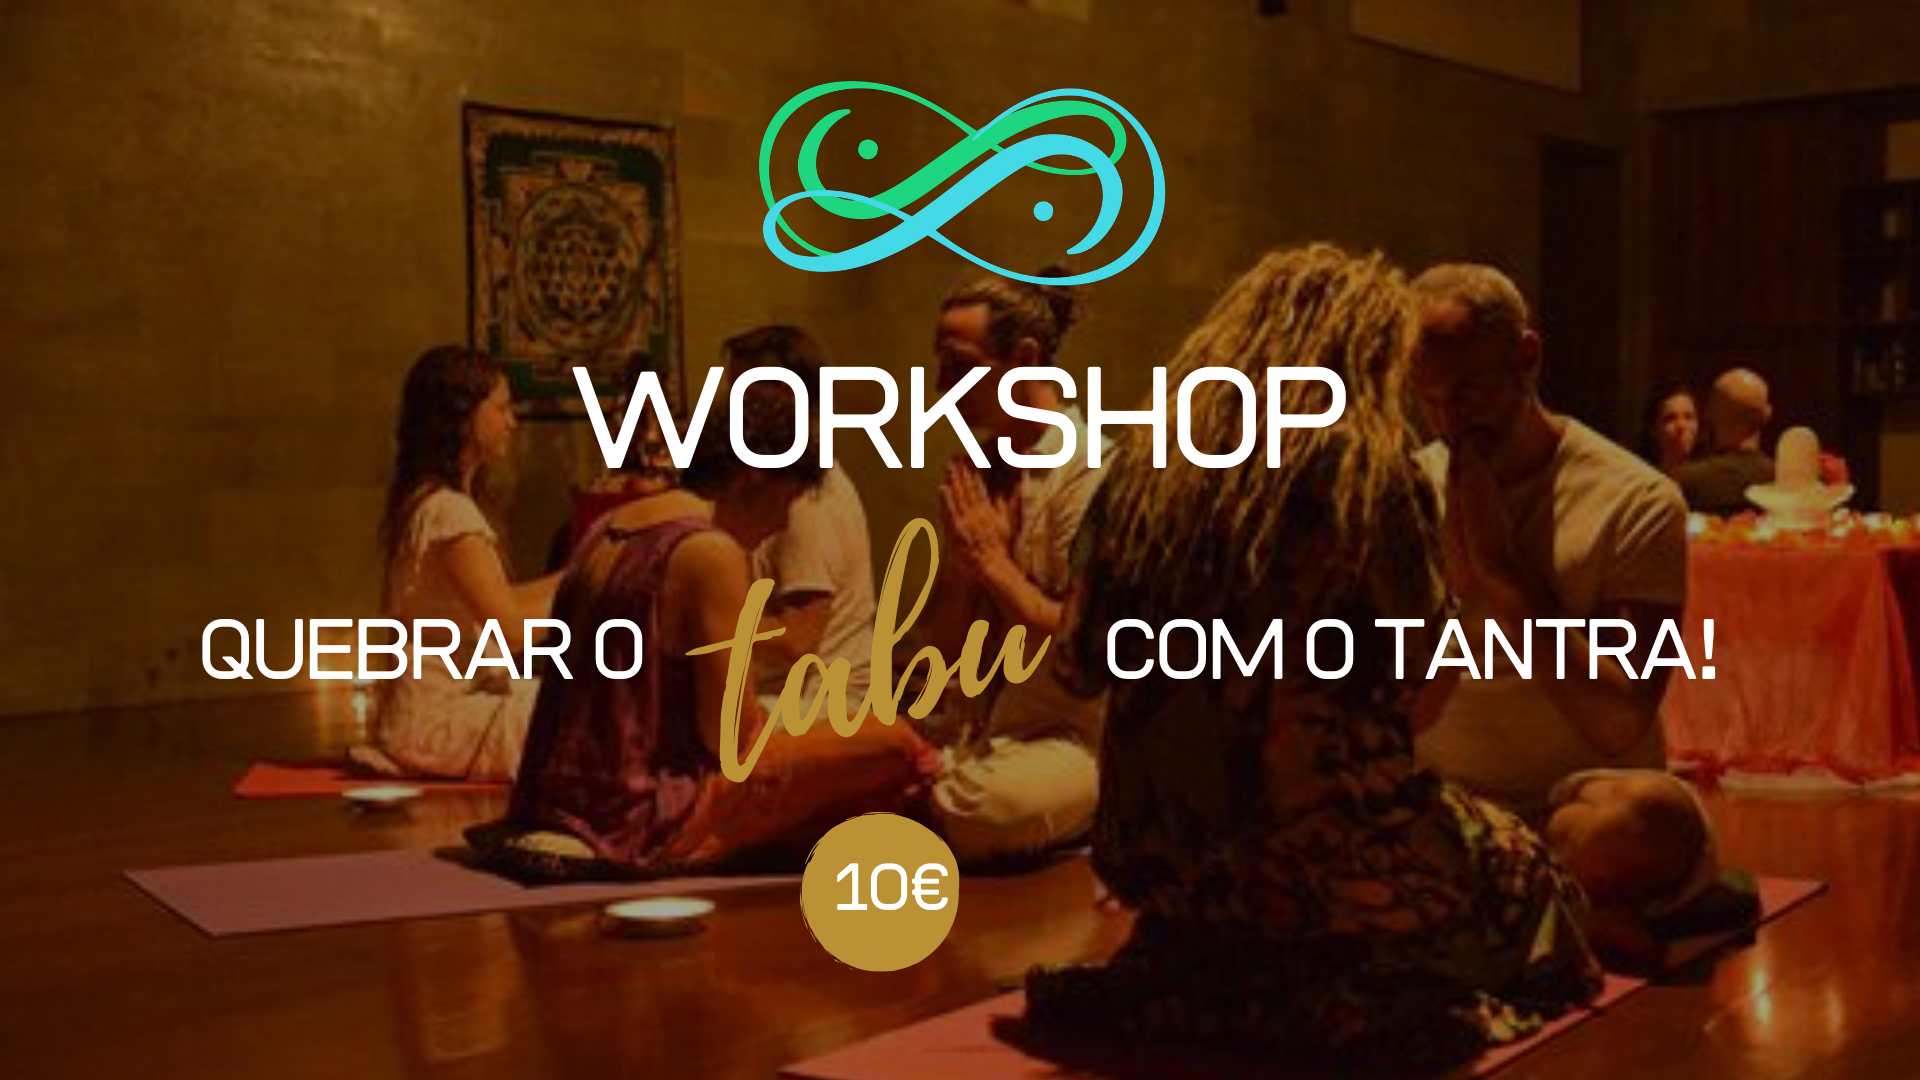 Workshop quebrar o tabu como tantra